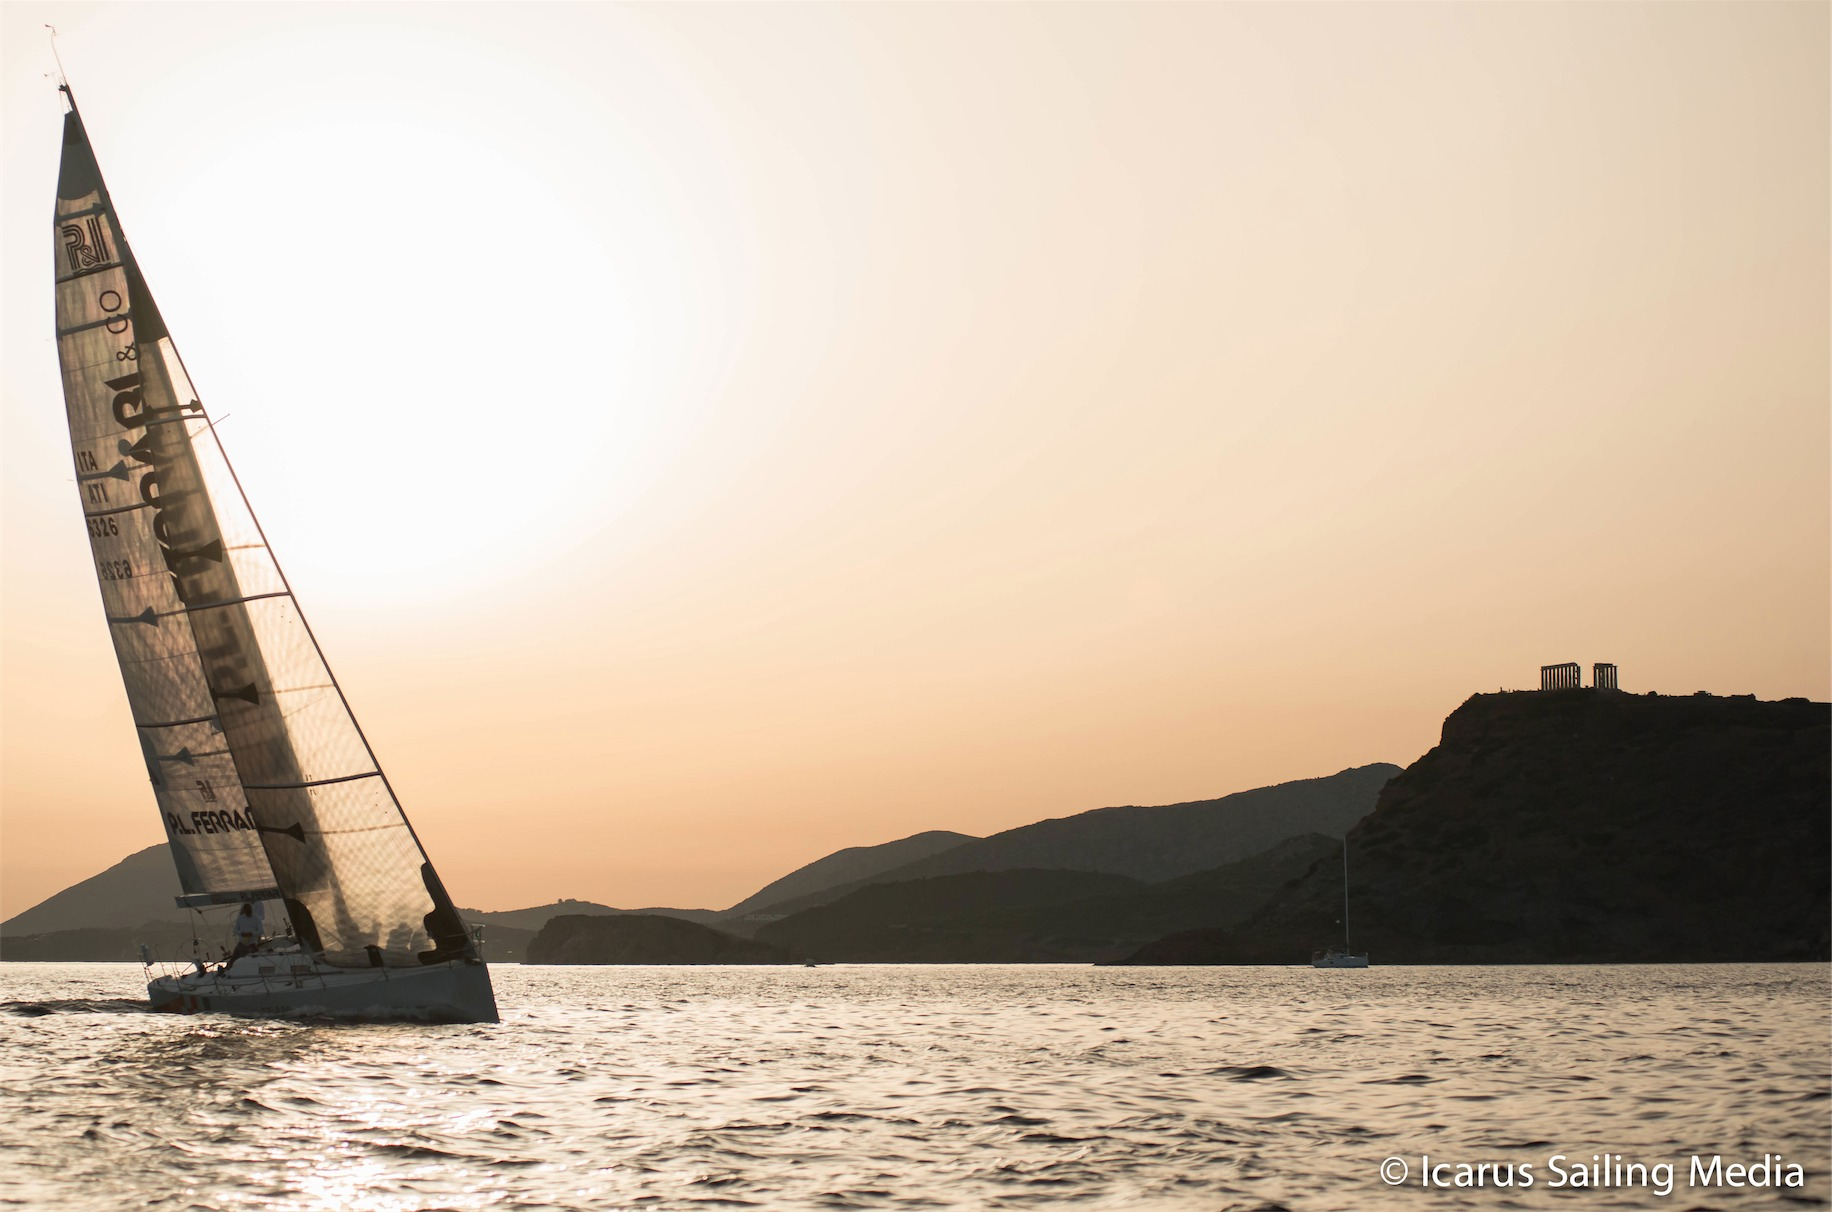 andros yacht race